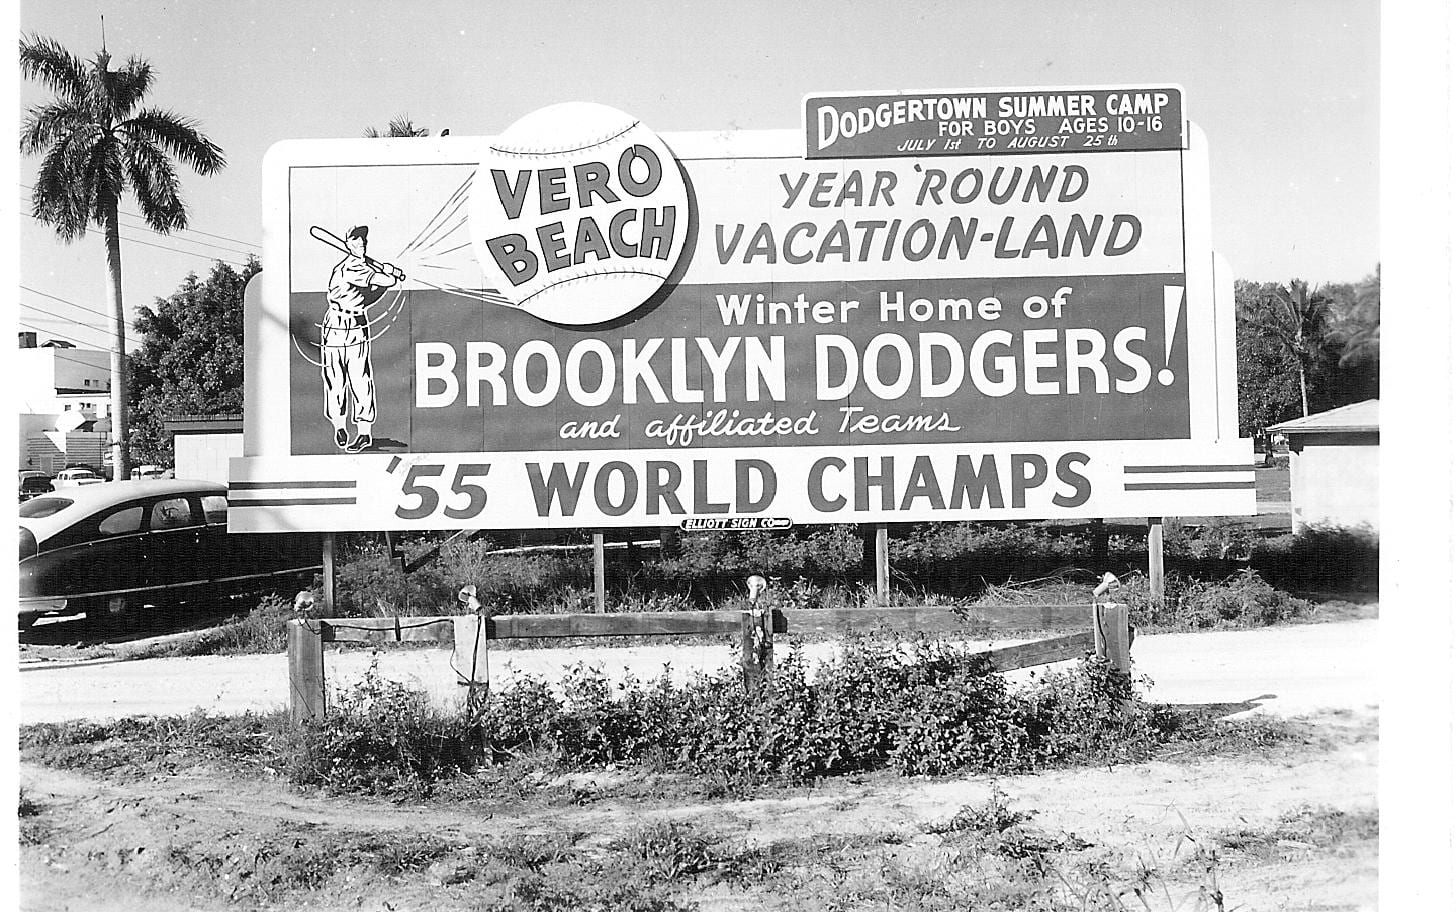 Dodgertown: The Beloved and Historic Ballpark Now Home to Baseball's Future